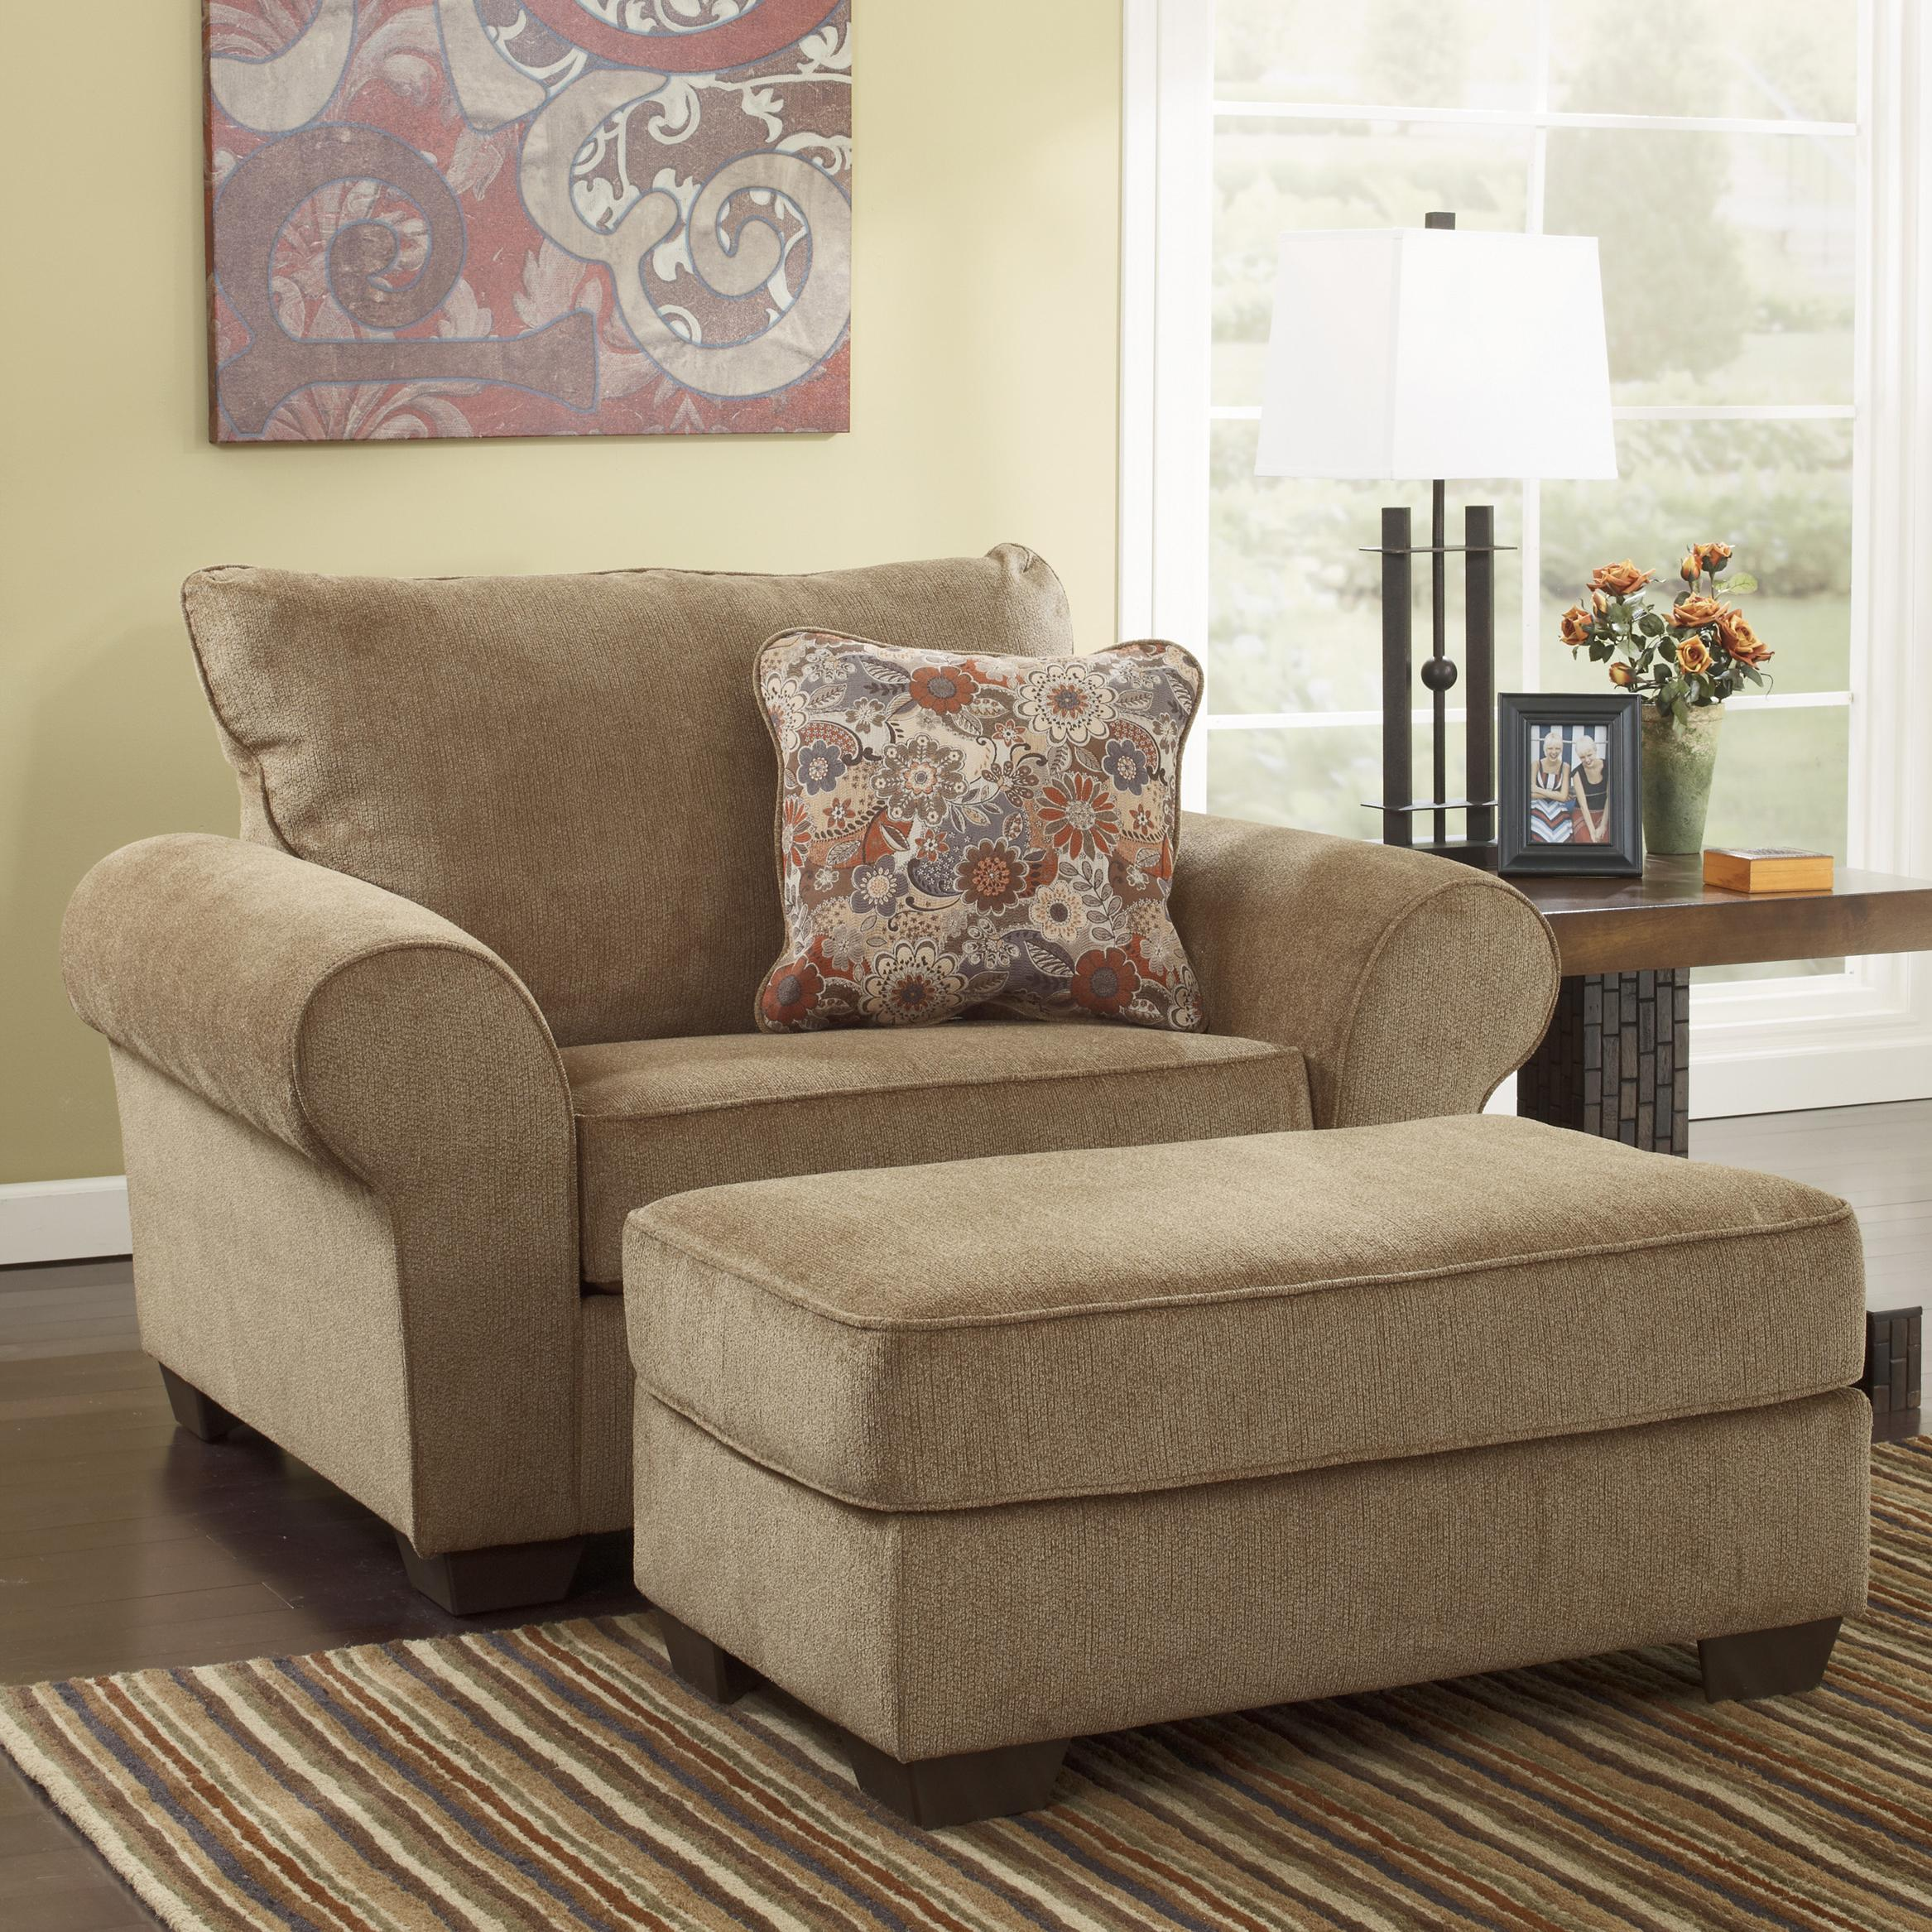 Ashley Furniture Galand - Umber Chair and a Half & Ottoman - Item Number: 1170023+14